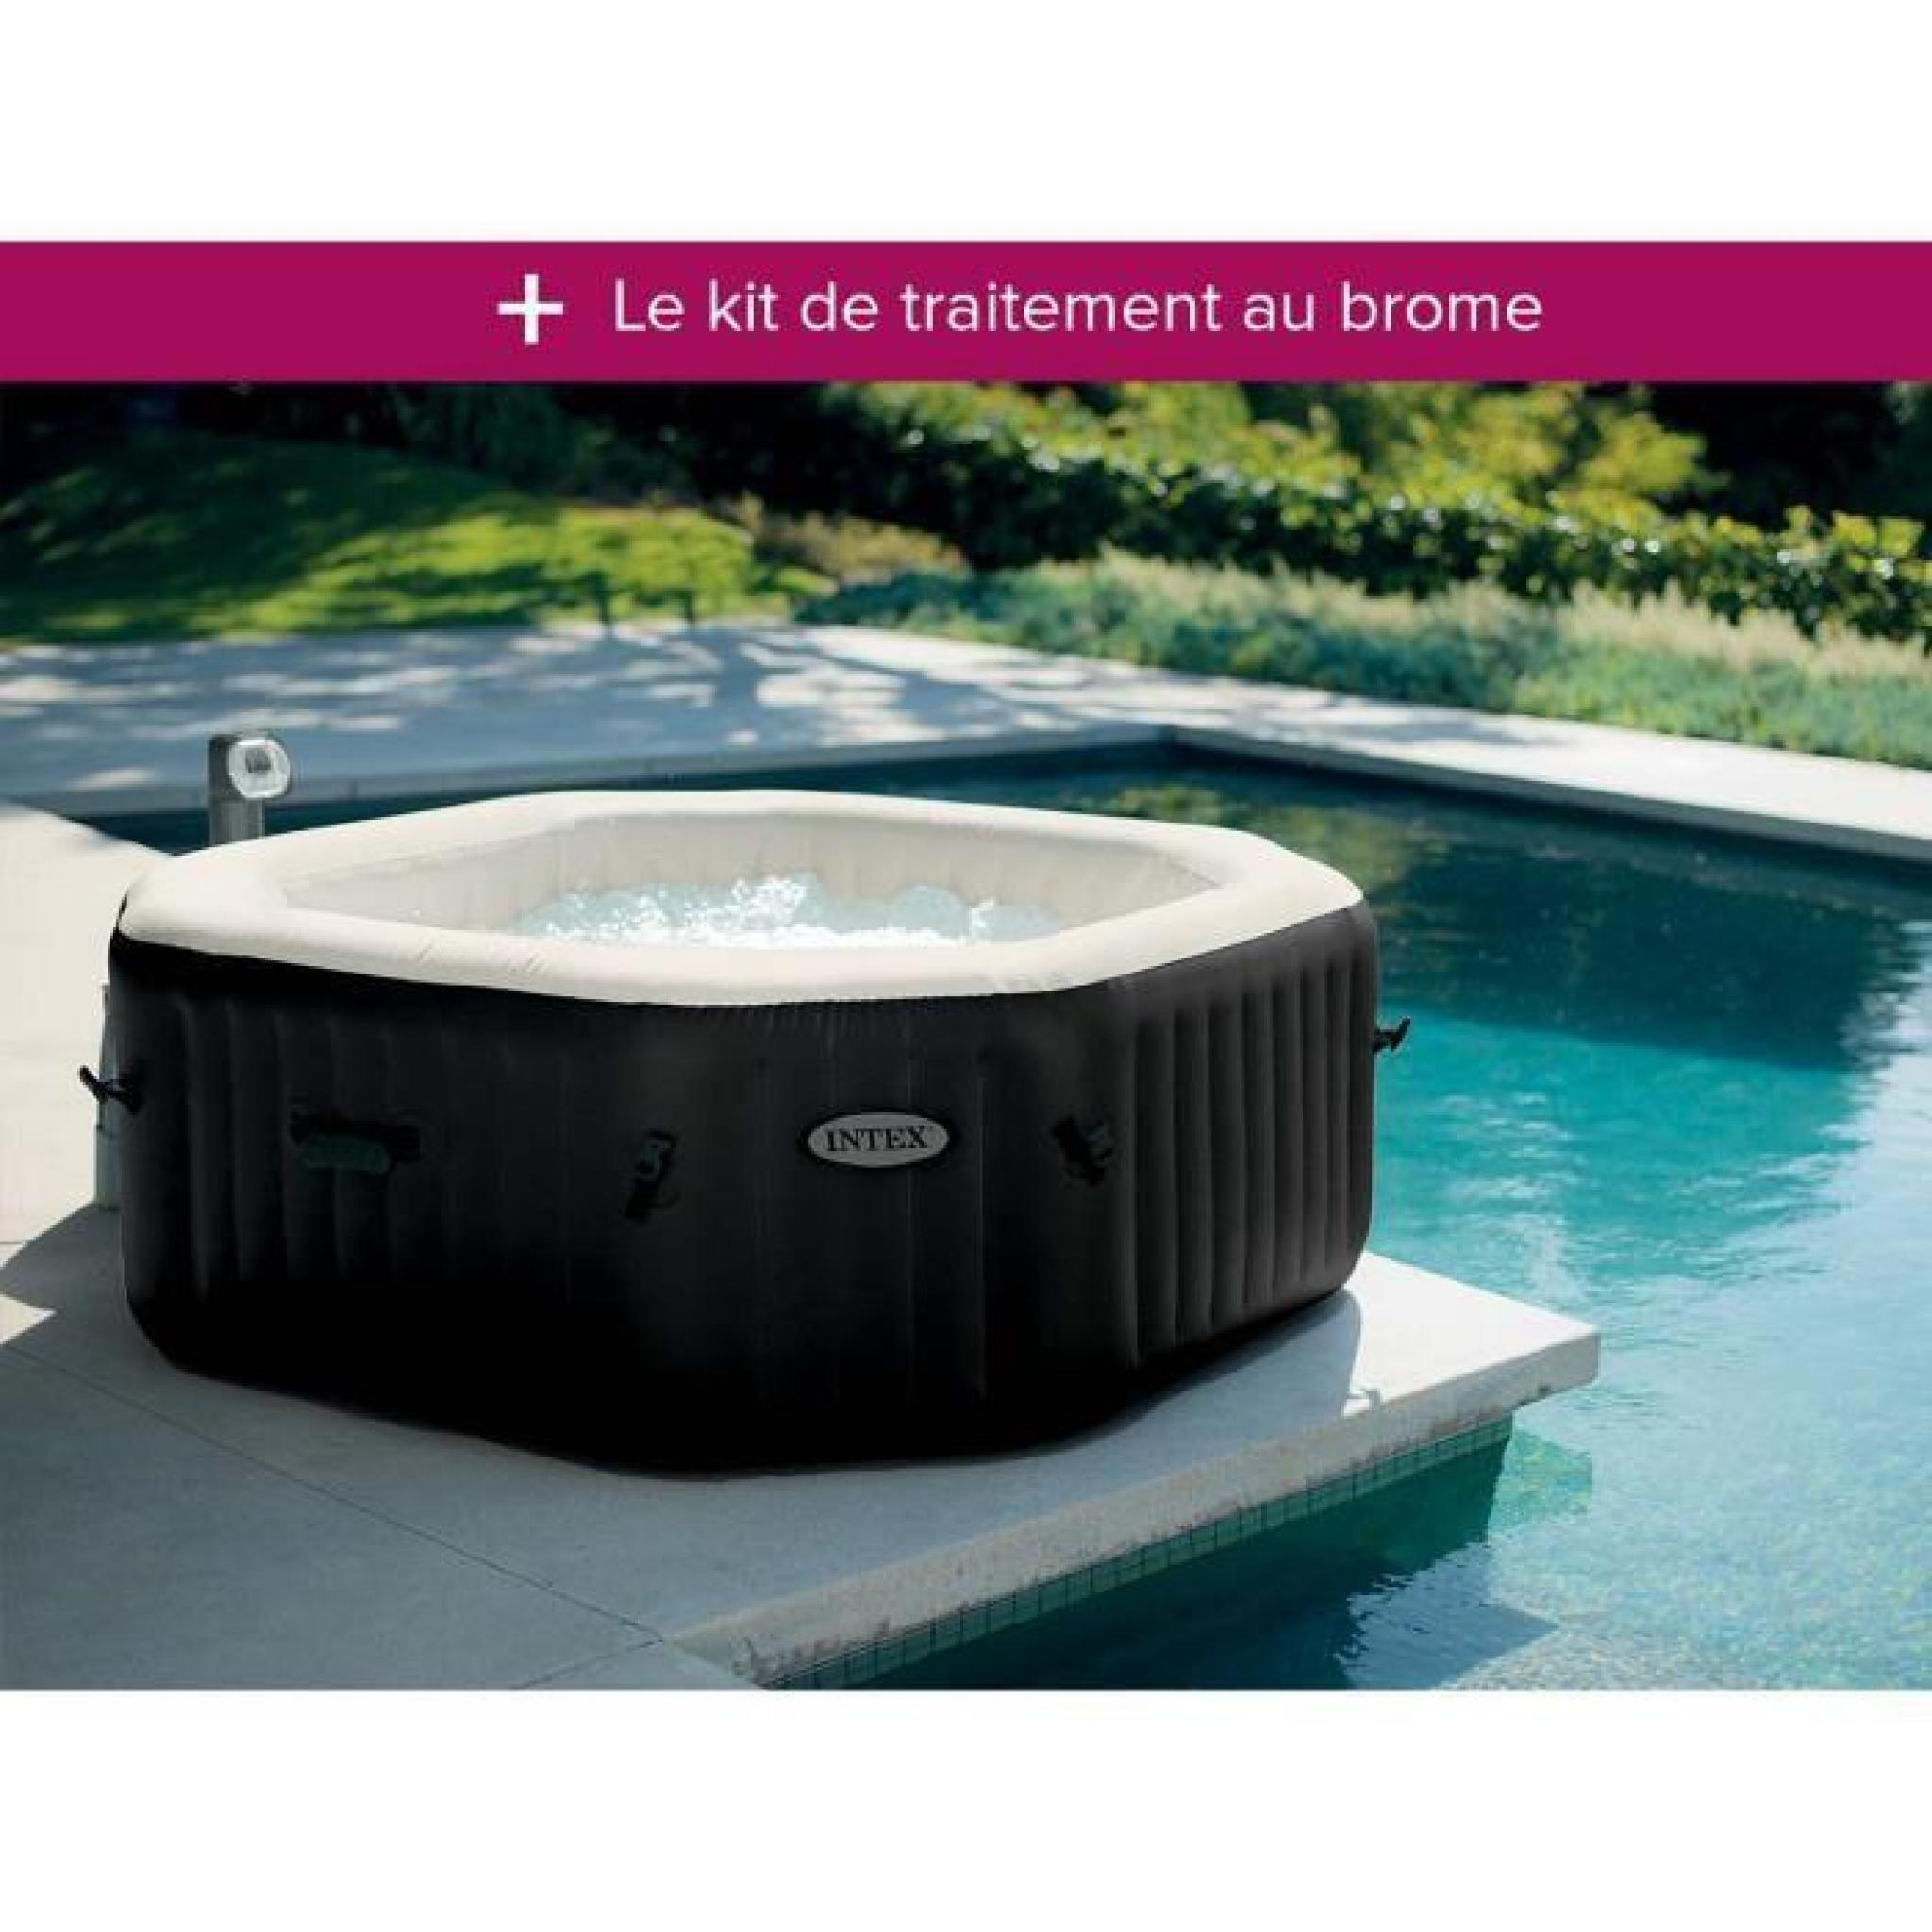 Spa gonflable intex purespa octogonal bulles jets 6 - Spa gonflable intex pas cher ...